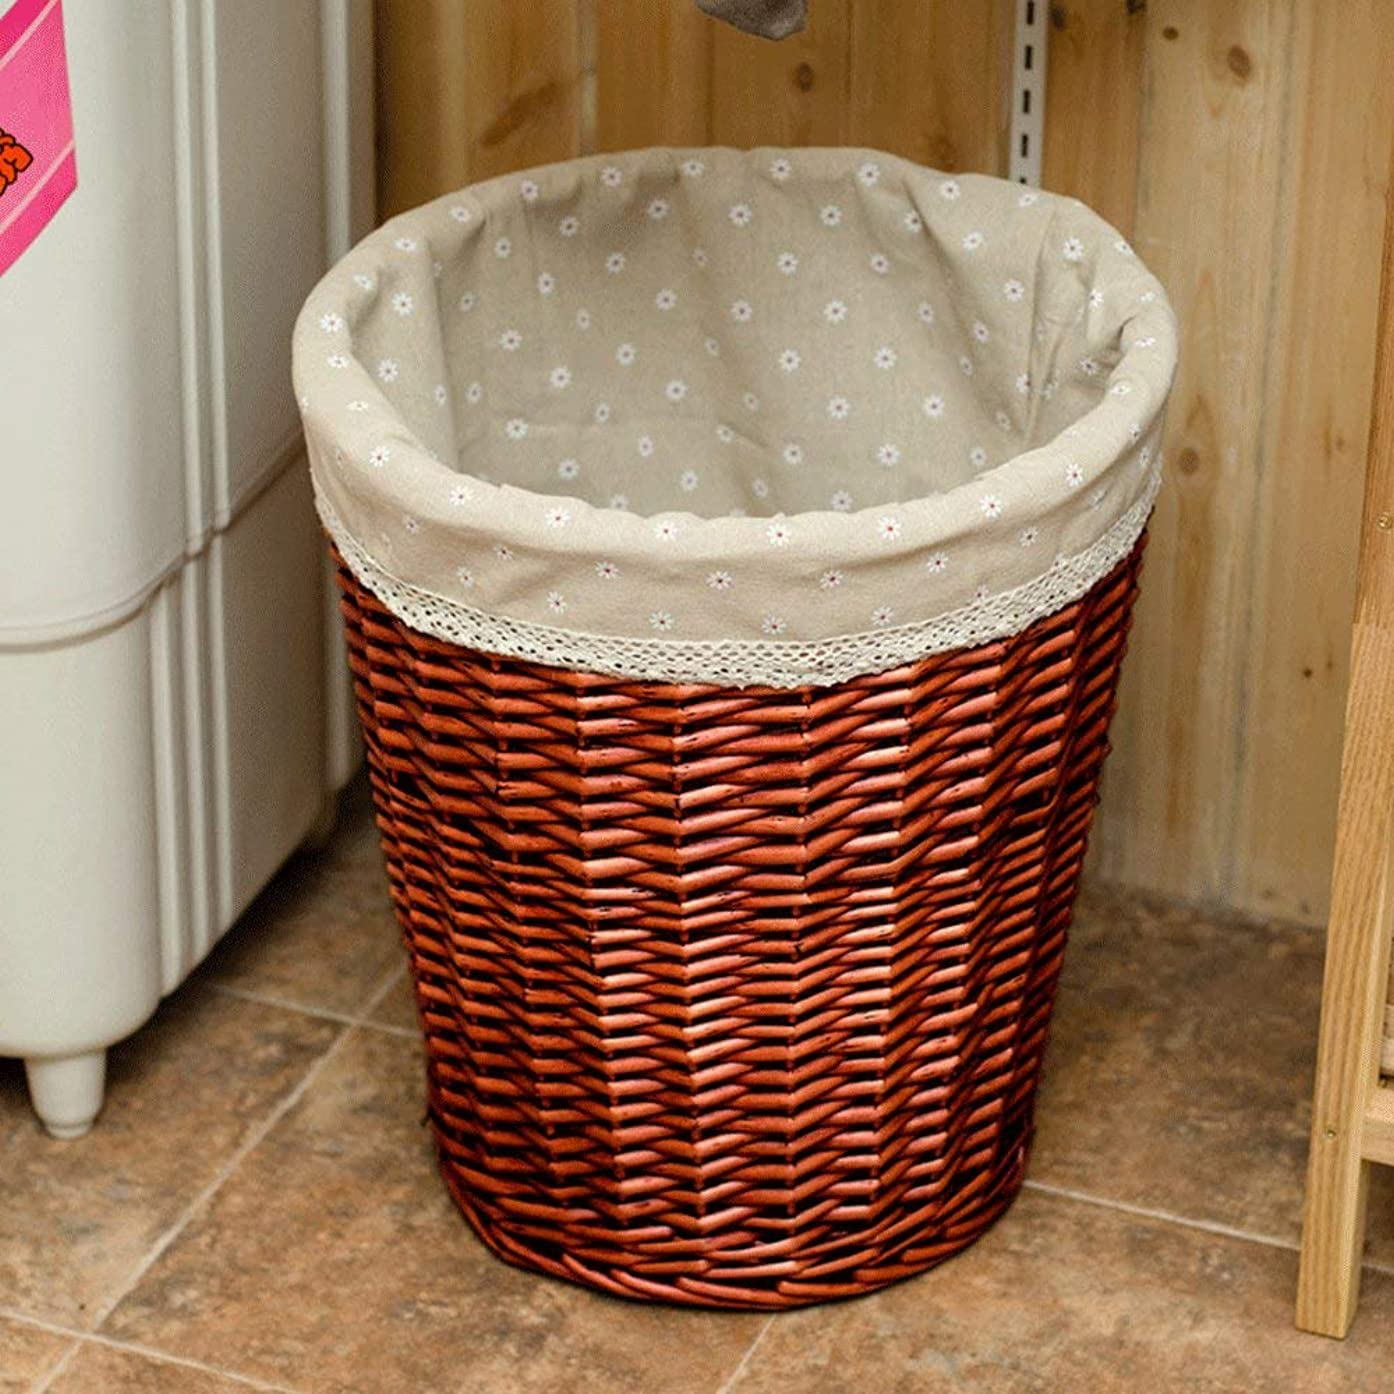 WEIFAN Dirty Hamper - Rattan uncovered Laundry Basket, Clothes Dirty Clothes Household Bathroom Storage Basket Toy Bucket(Medium 5)